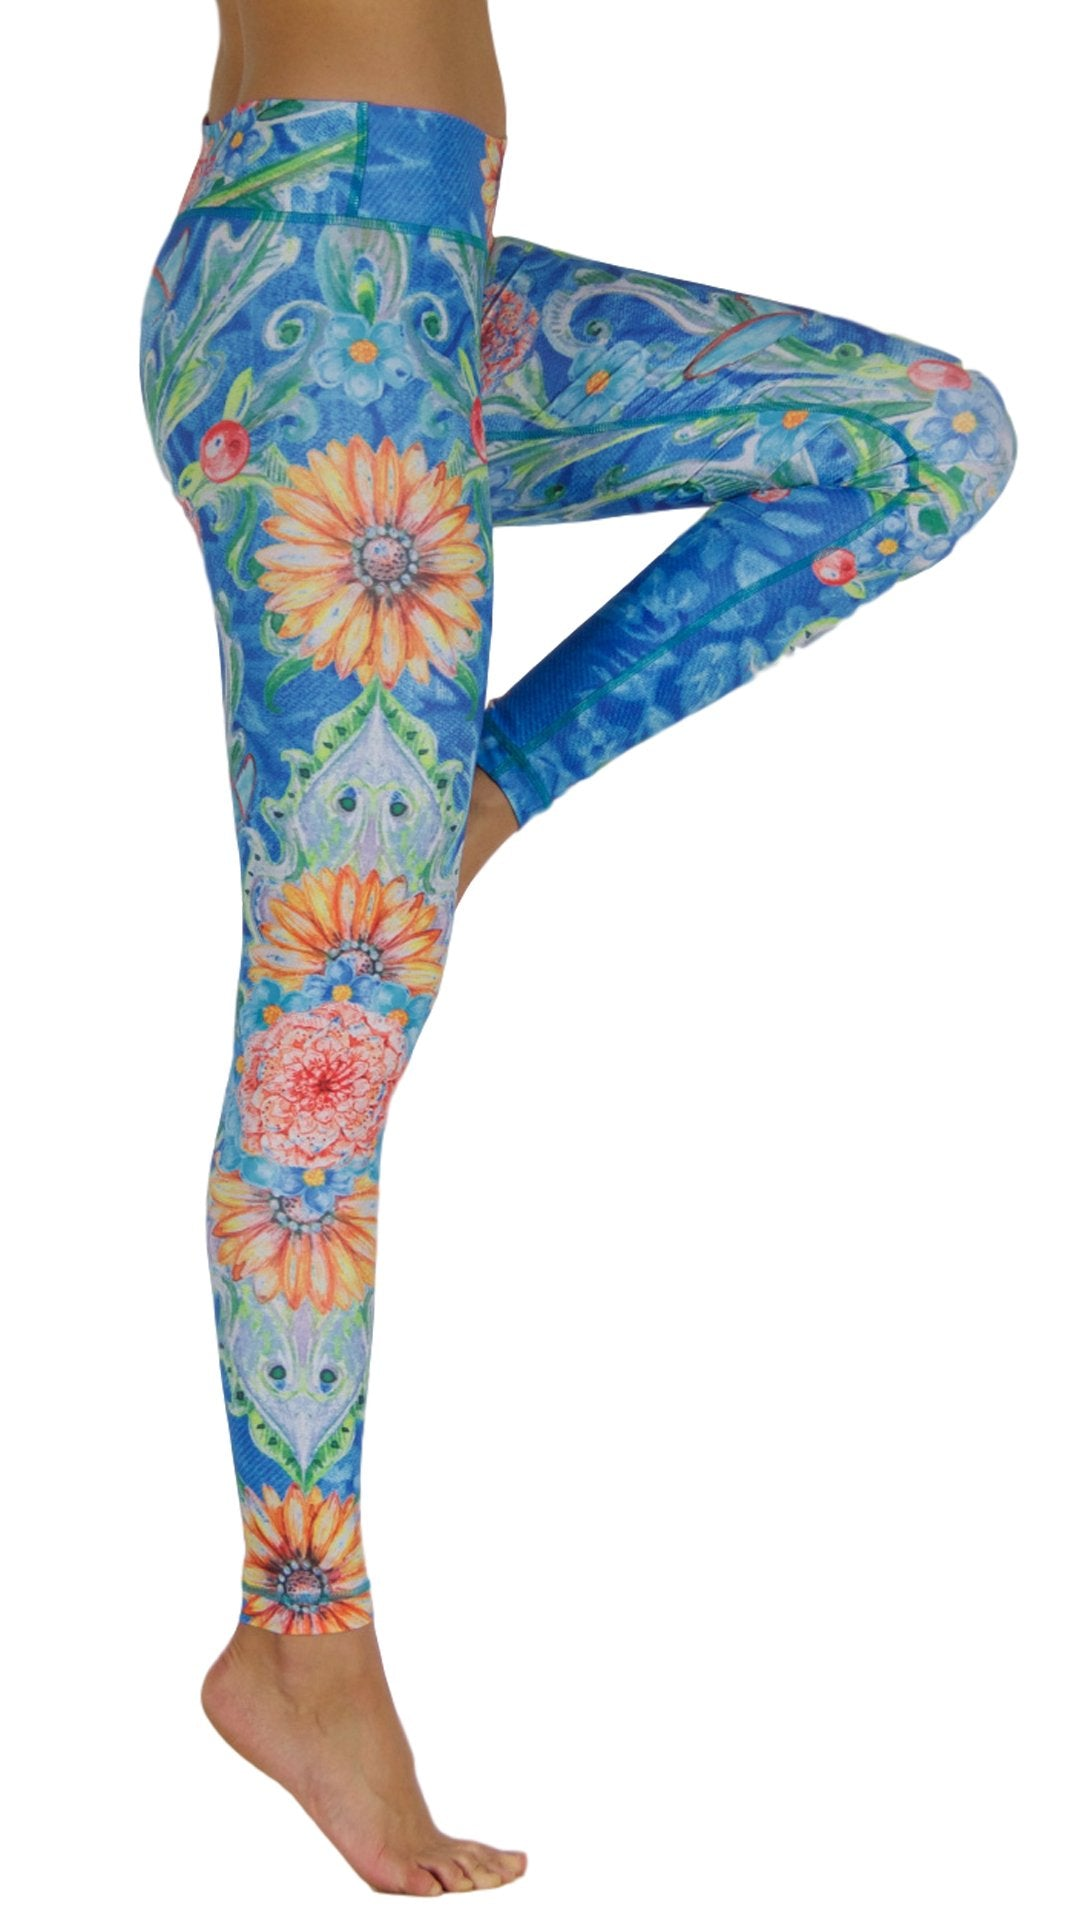 Flowers by the Sea by Niyama - High Quality, Yoga Legging for Movement Artists.